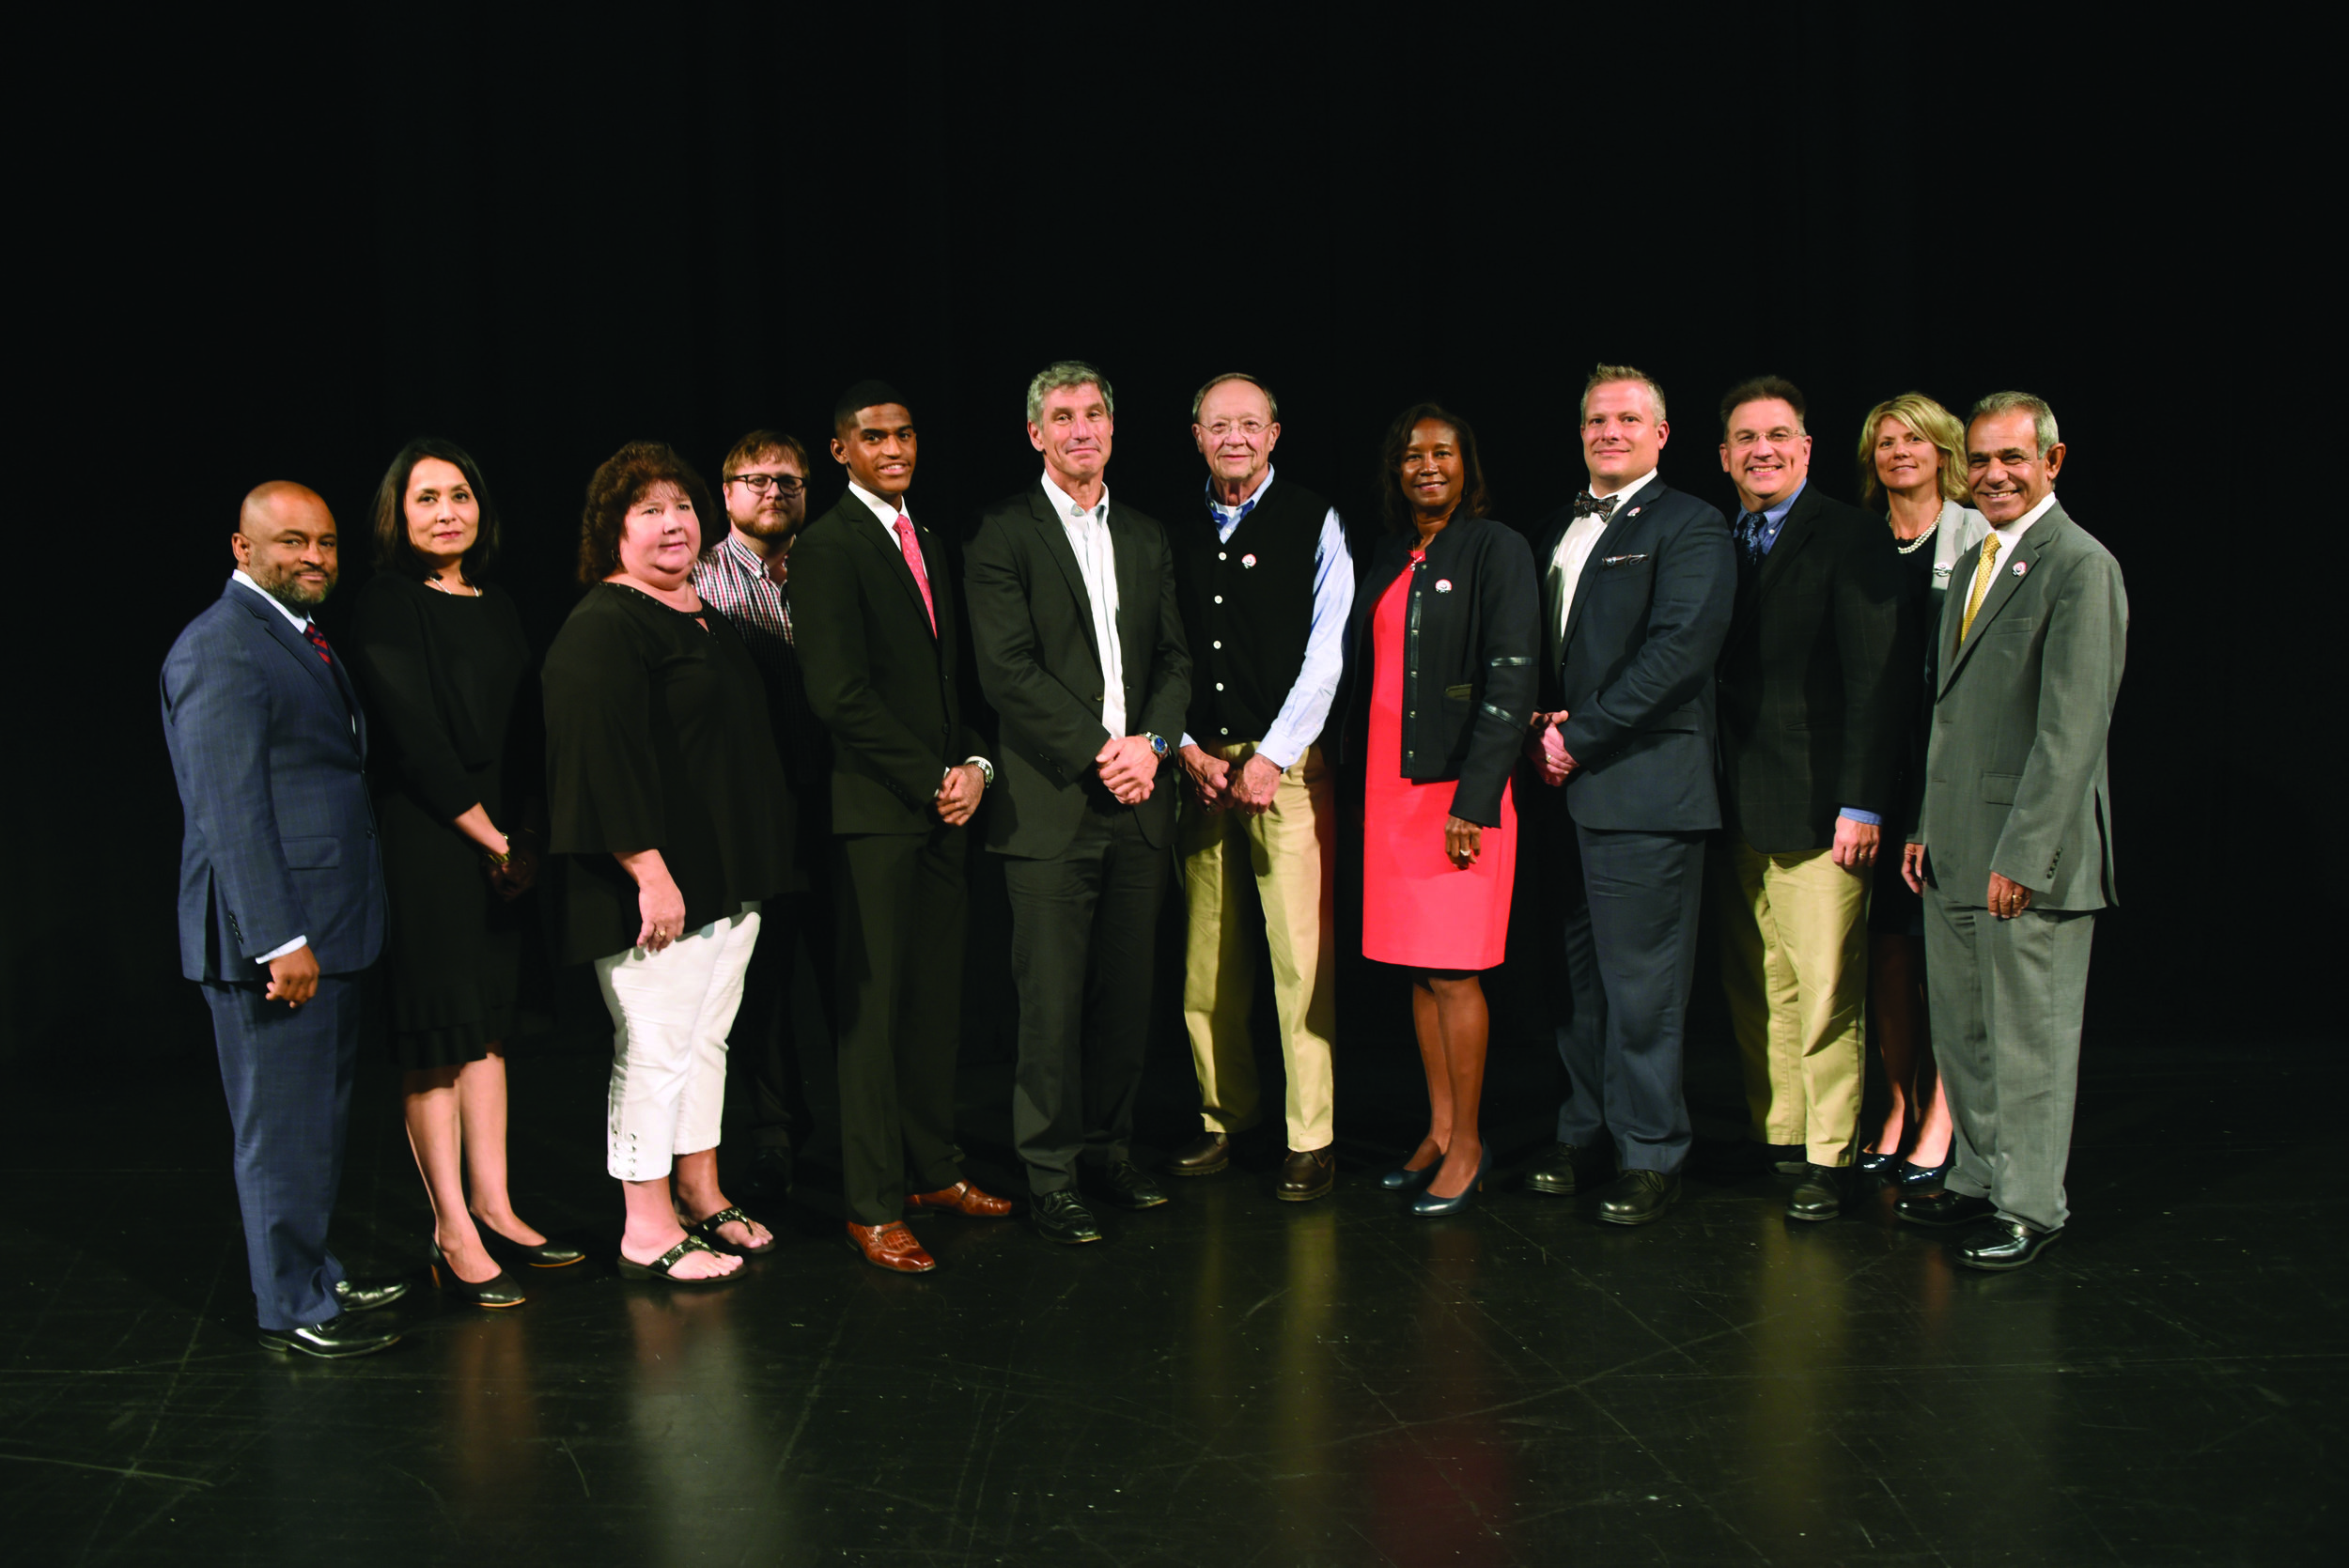 When State System Chancellor Dan Greenstein visited Shippensburg, Stephen Washington had the opportunity to meet him. As the new student trustee, Washington looks forward to being a liaison between campus and administration.